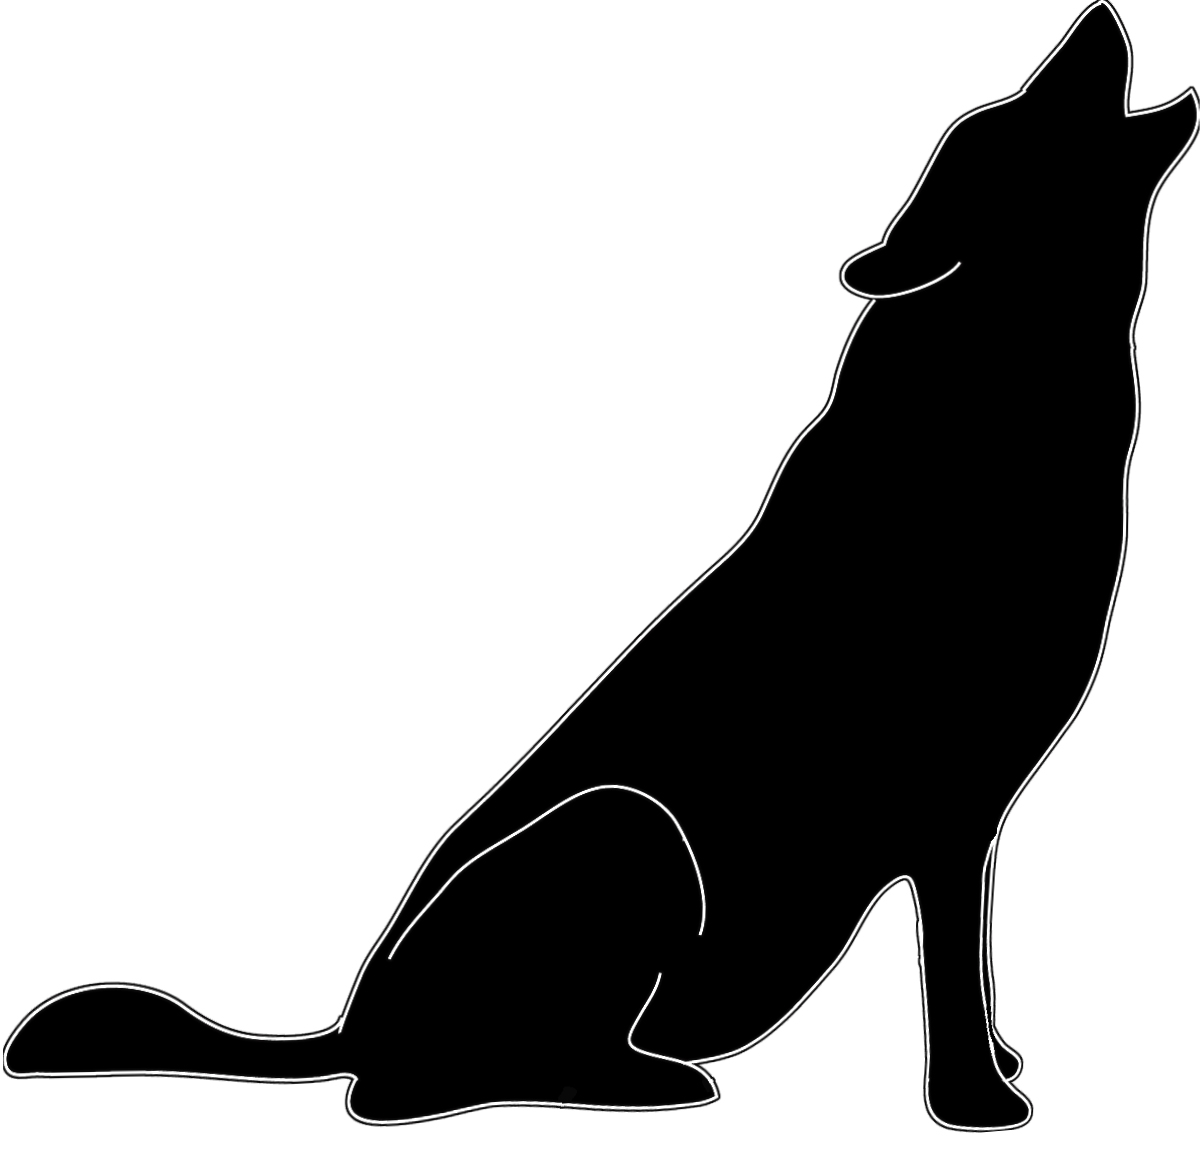 Howling clipart #4, Download drawings